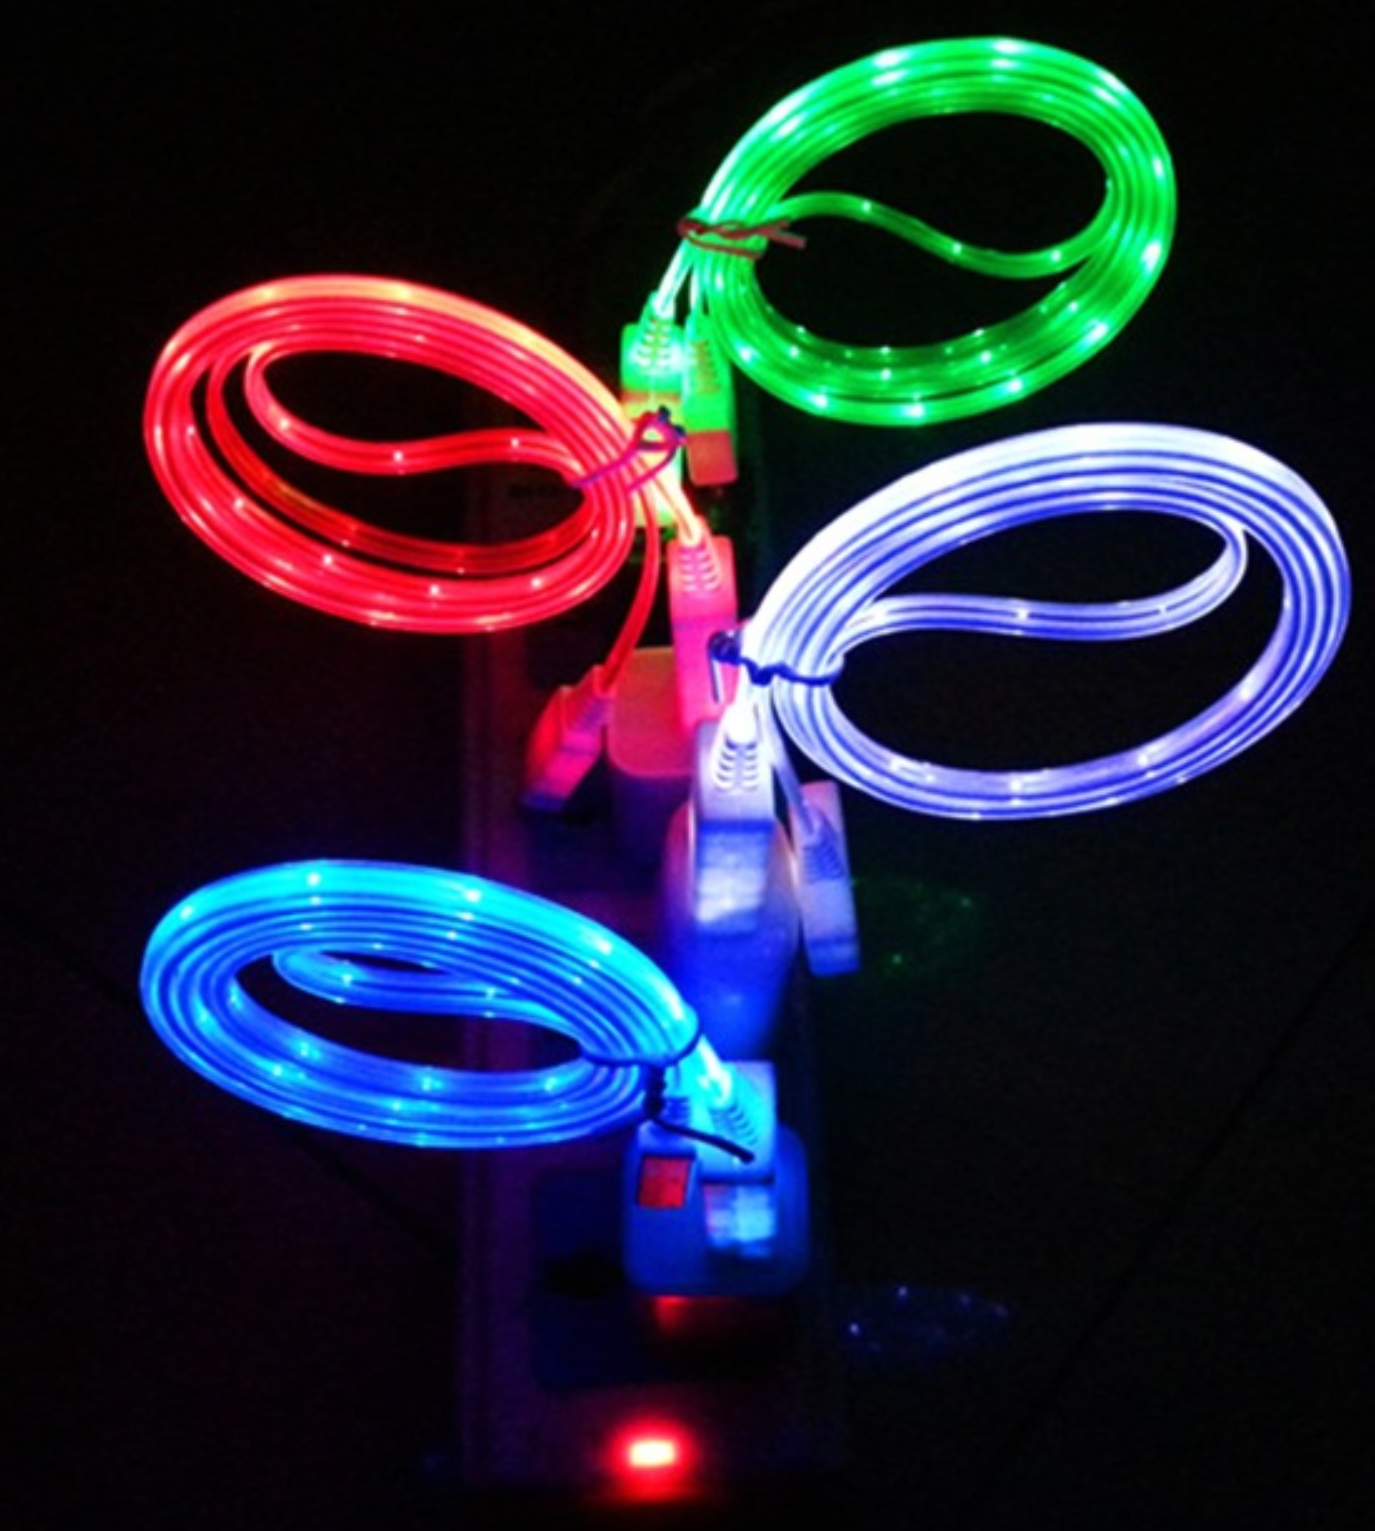 DG Flowing Magnetic Charger Cable Light Up Shining Phone Charging Cable Snap Quick Connect 3 in 1 For Micro Type C 8 Pin